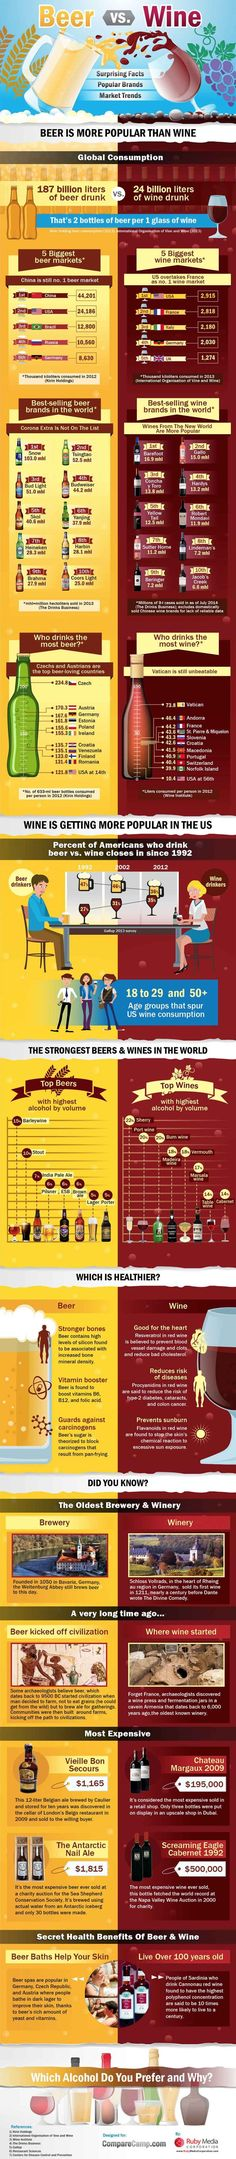 Beer Vs Wine: Which wins? The Healthiest, The Most Popular And The Priciest #Infographic